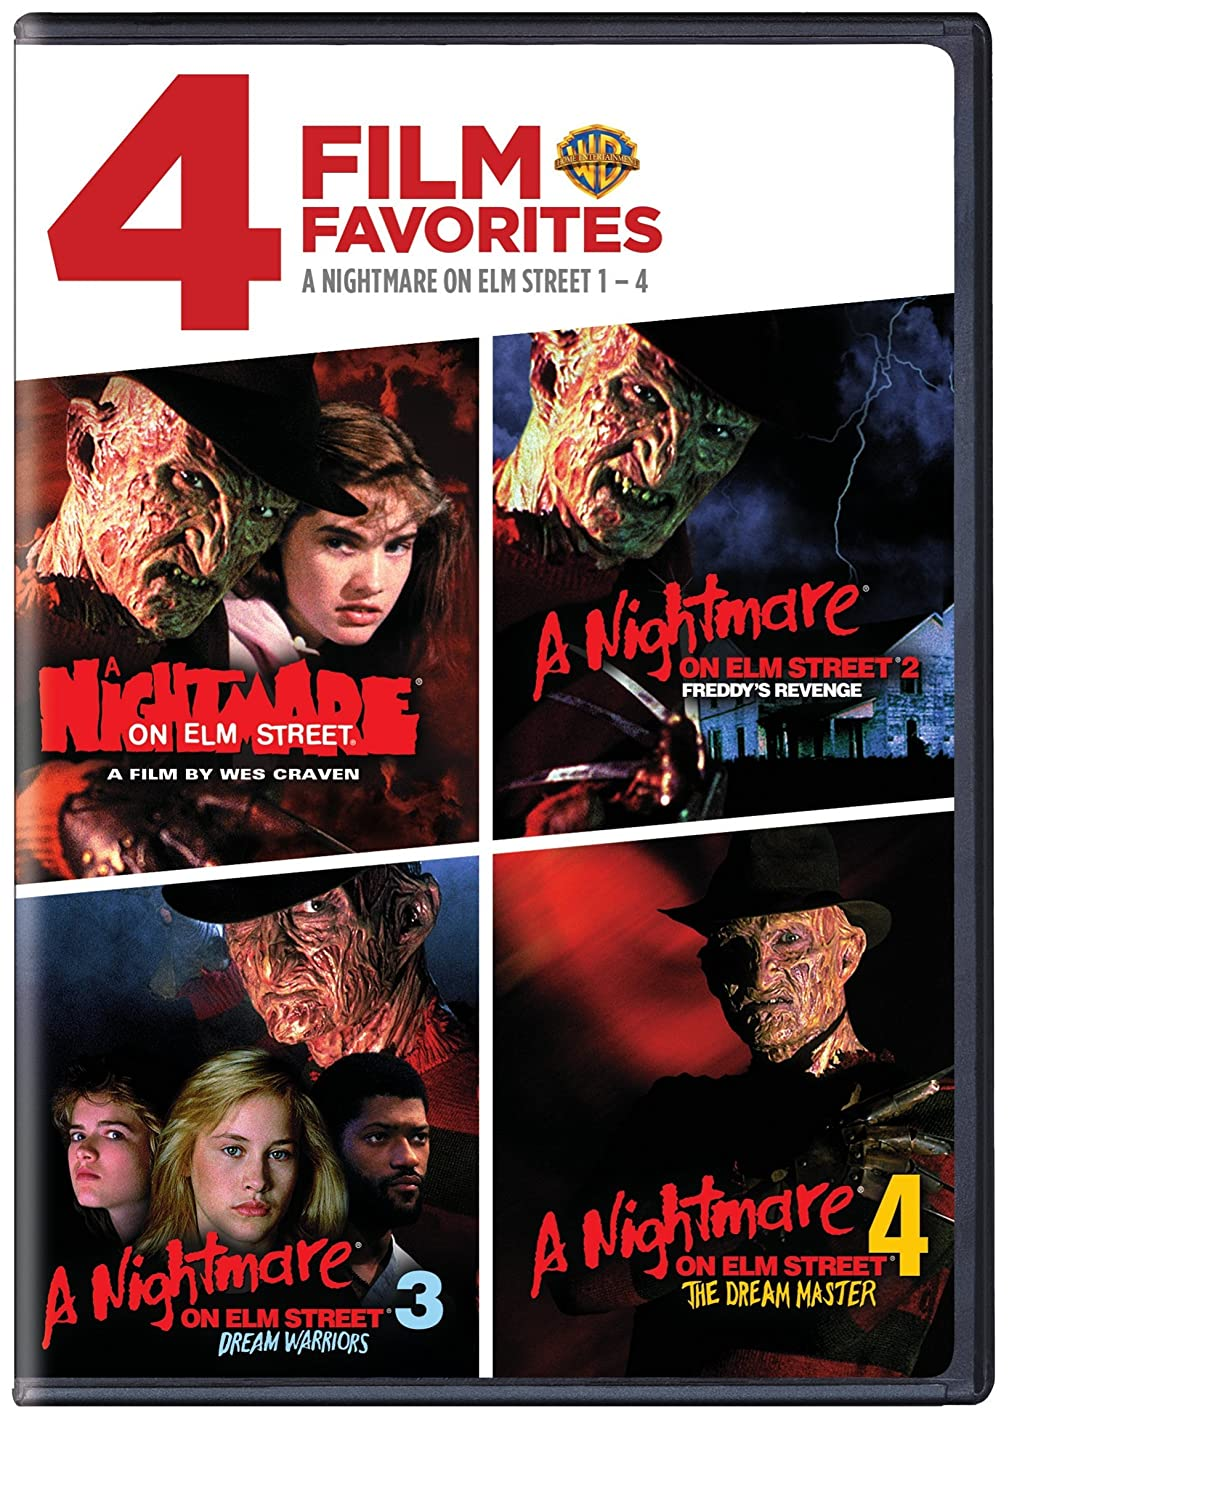 4 Film Favorites: Nightmare on Elm Street 1-4 (A Nightmare on Elm Street, Nightmare on Elm Street 2: Freddie's Revenge, Nightmare on Elm Street 3: Dream Warriors, Nightmare on Elm Street 4: The Dream Master)